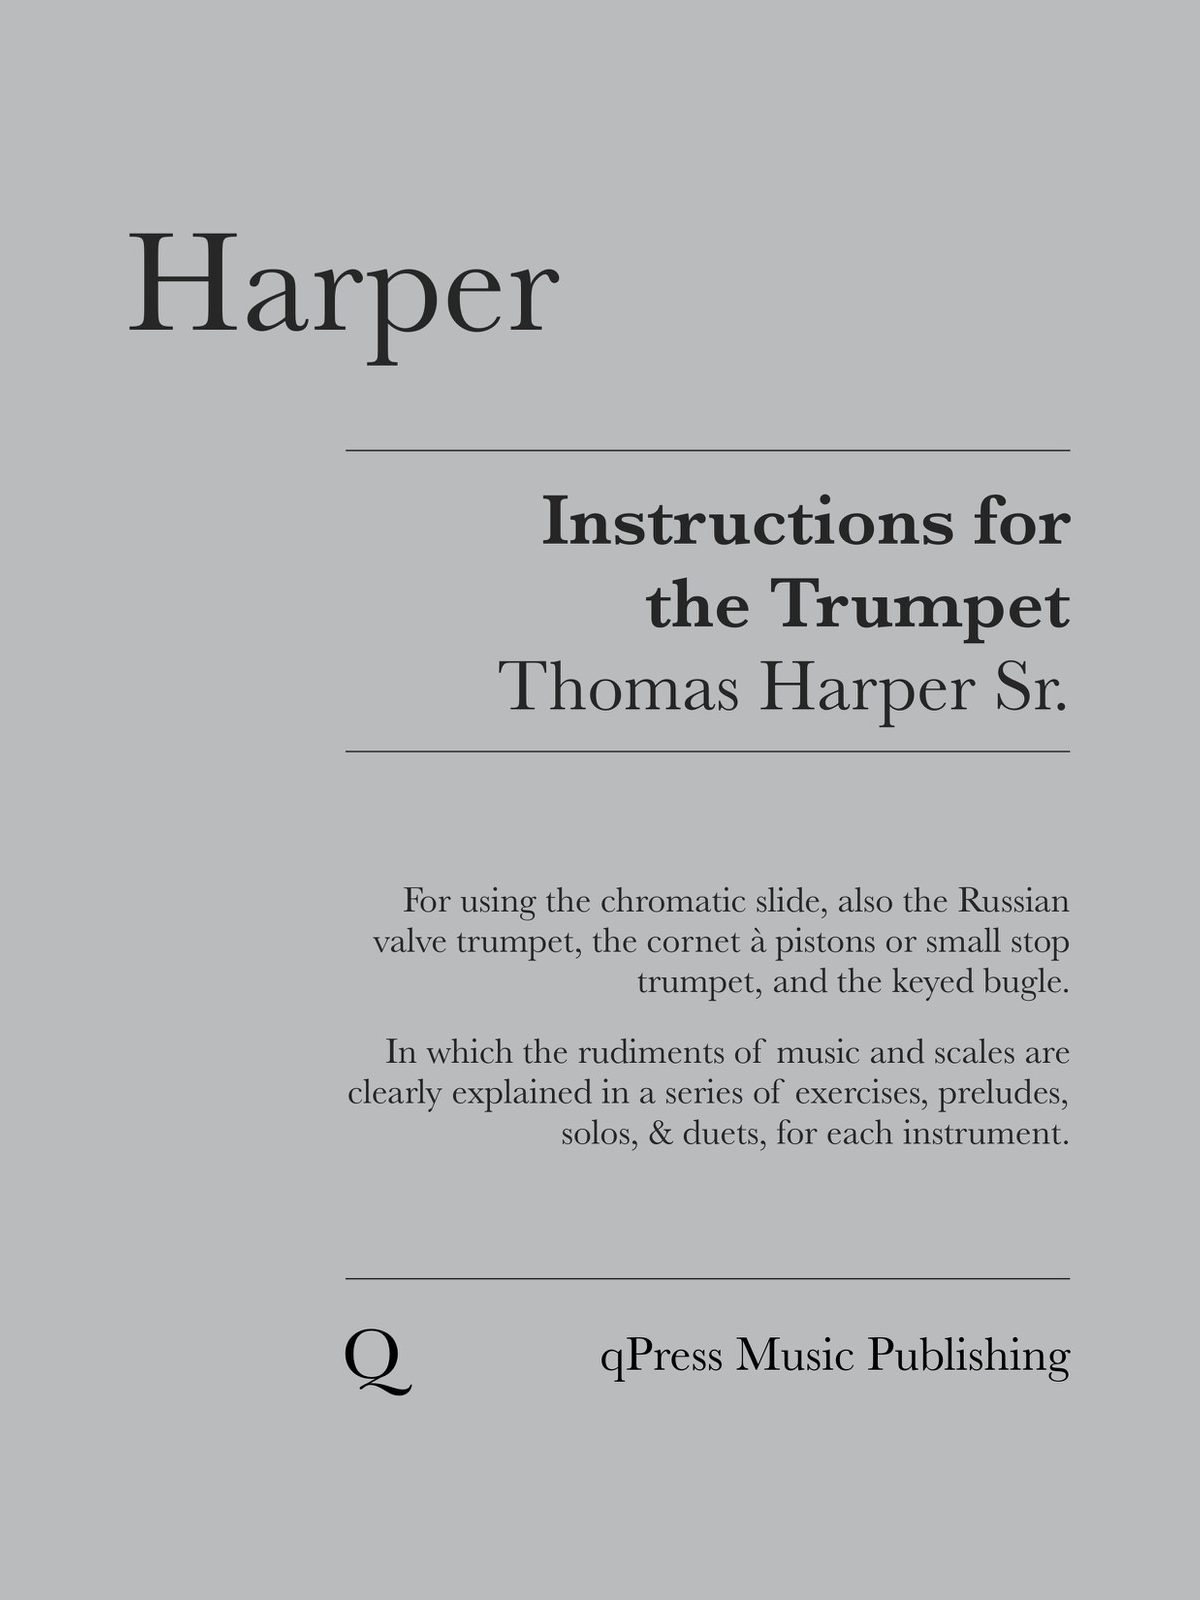 Harper Sr, Instruction for the Trumpet